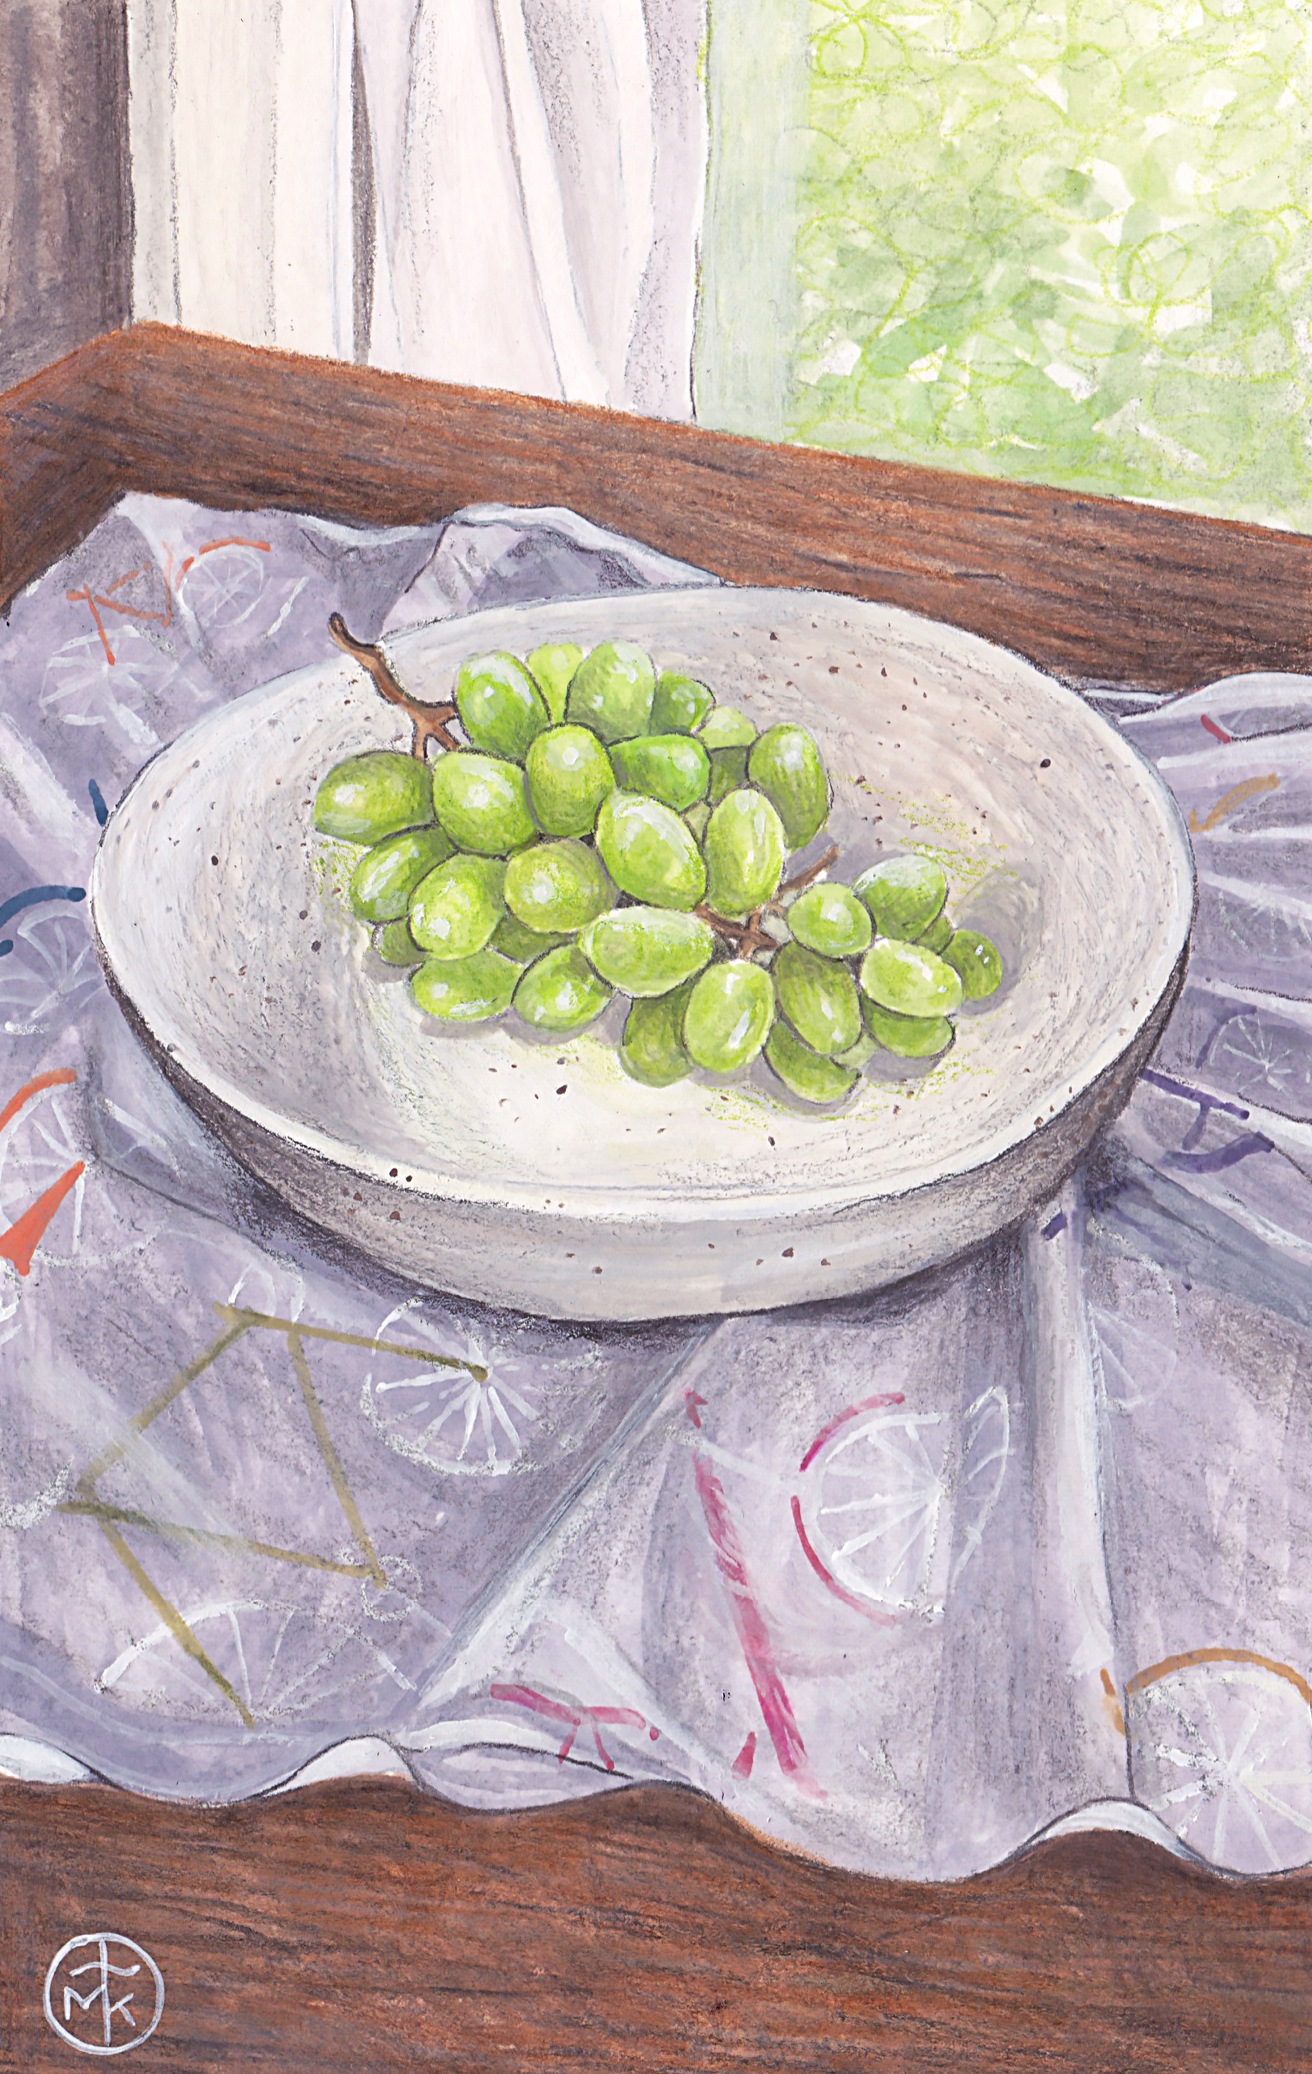 New CROPPED - Grapes in a Bowl.jpg